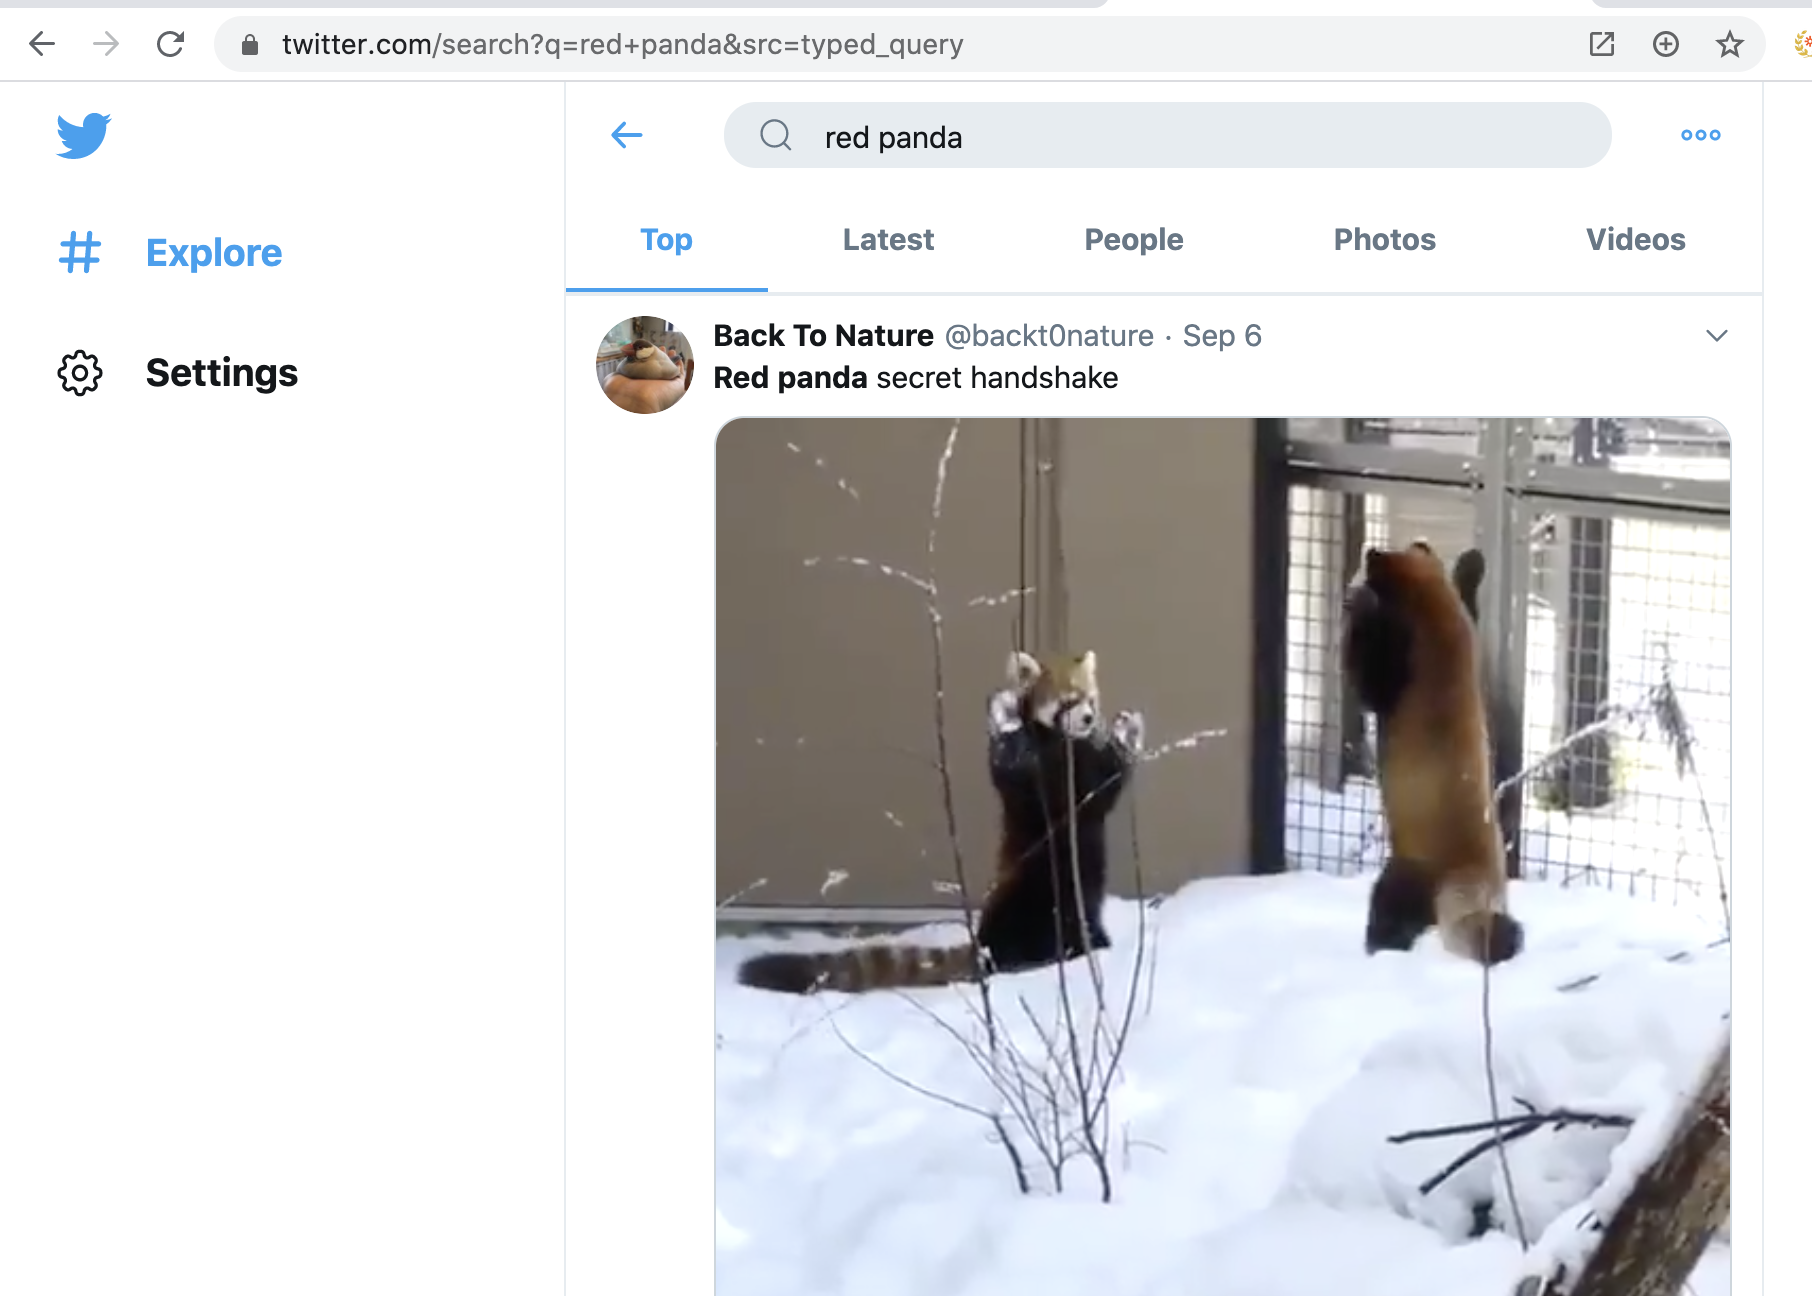 Twitter likes red pandas and so do I